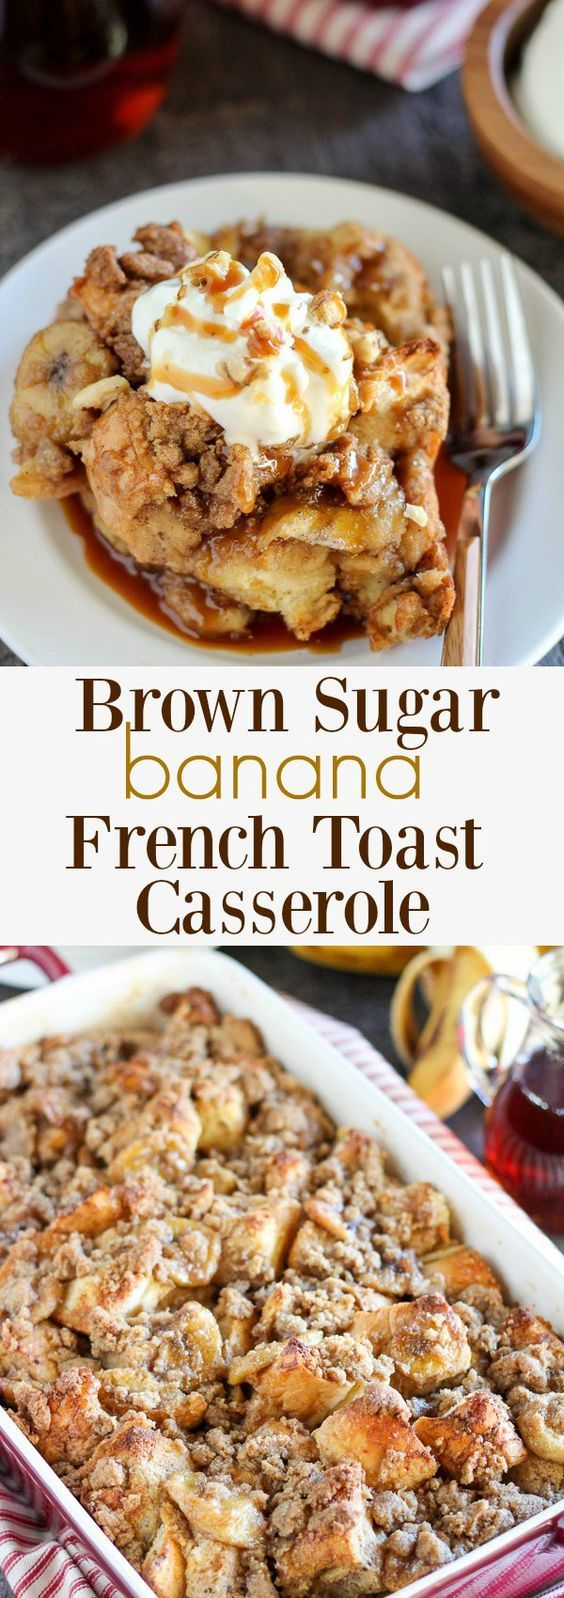 Brown Sugar Banana French Toast Casserole - A make-ahead baked french toast casserole filled with brown sugar caramel sauce, sliced bananas and a brown sugar crumble topping. (Cheese Making Breakfast Casserole)